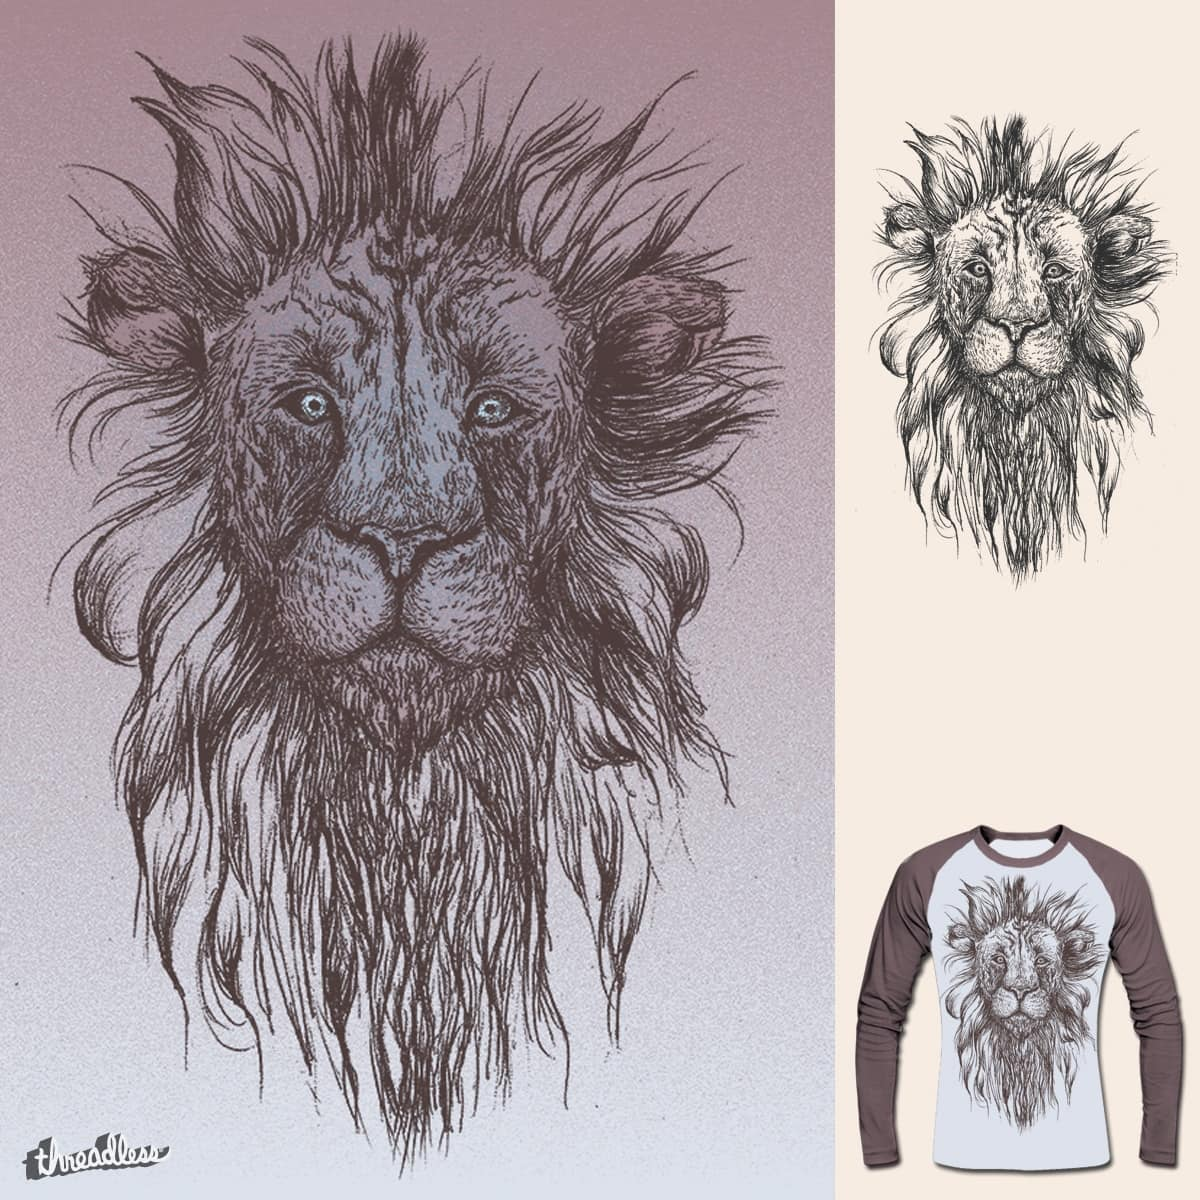 Crud the Lion by RAIL-GUN on Threadless